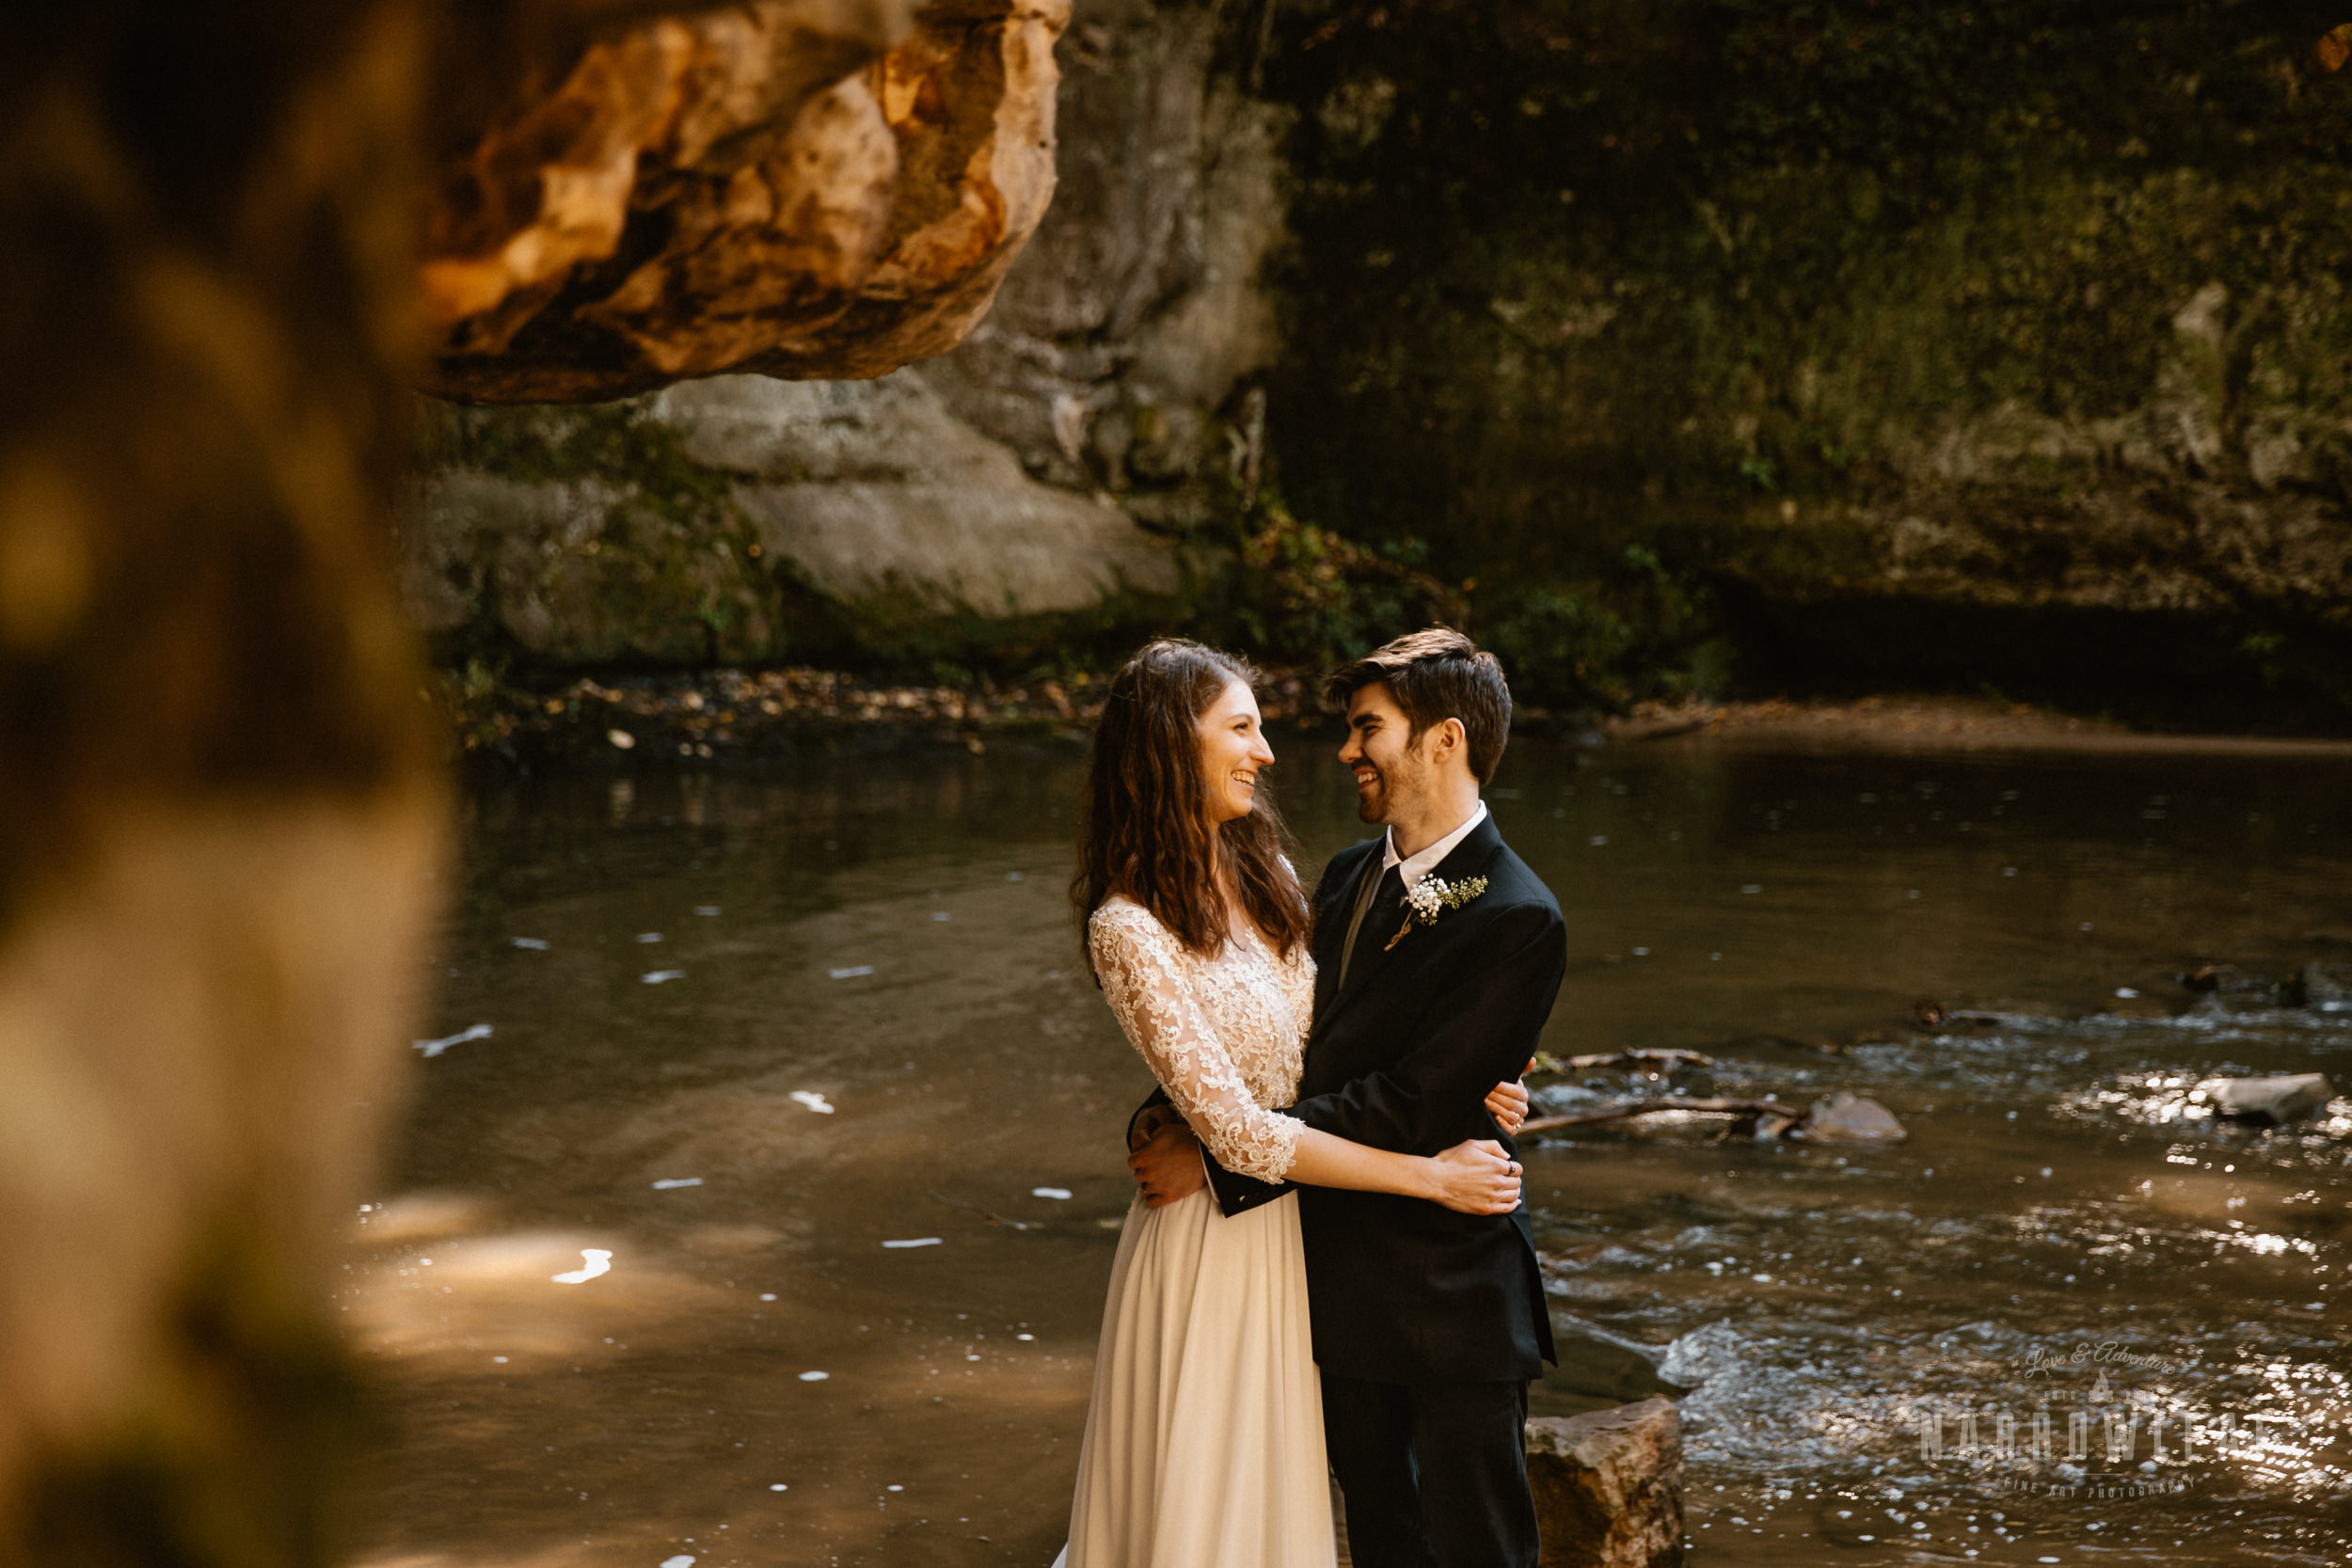 Perrot-State-Park-Baraboo-Wisconsin-Fall-adventure-hiking-Elopement-Narrowleaf_Love_and_Adventure_Photography-0148.jpg